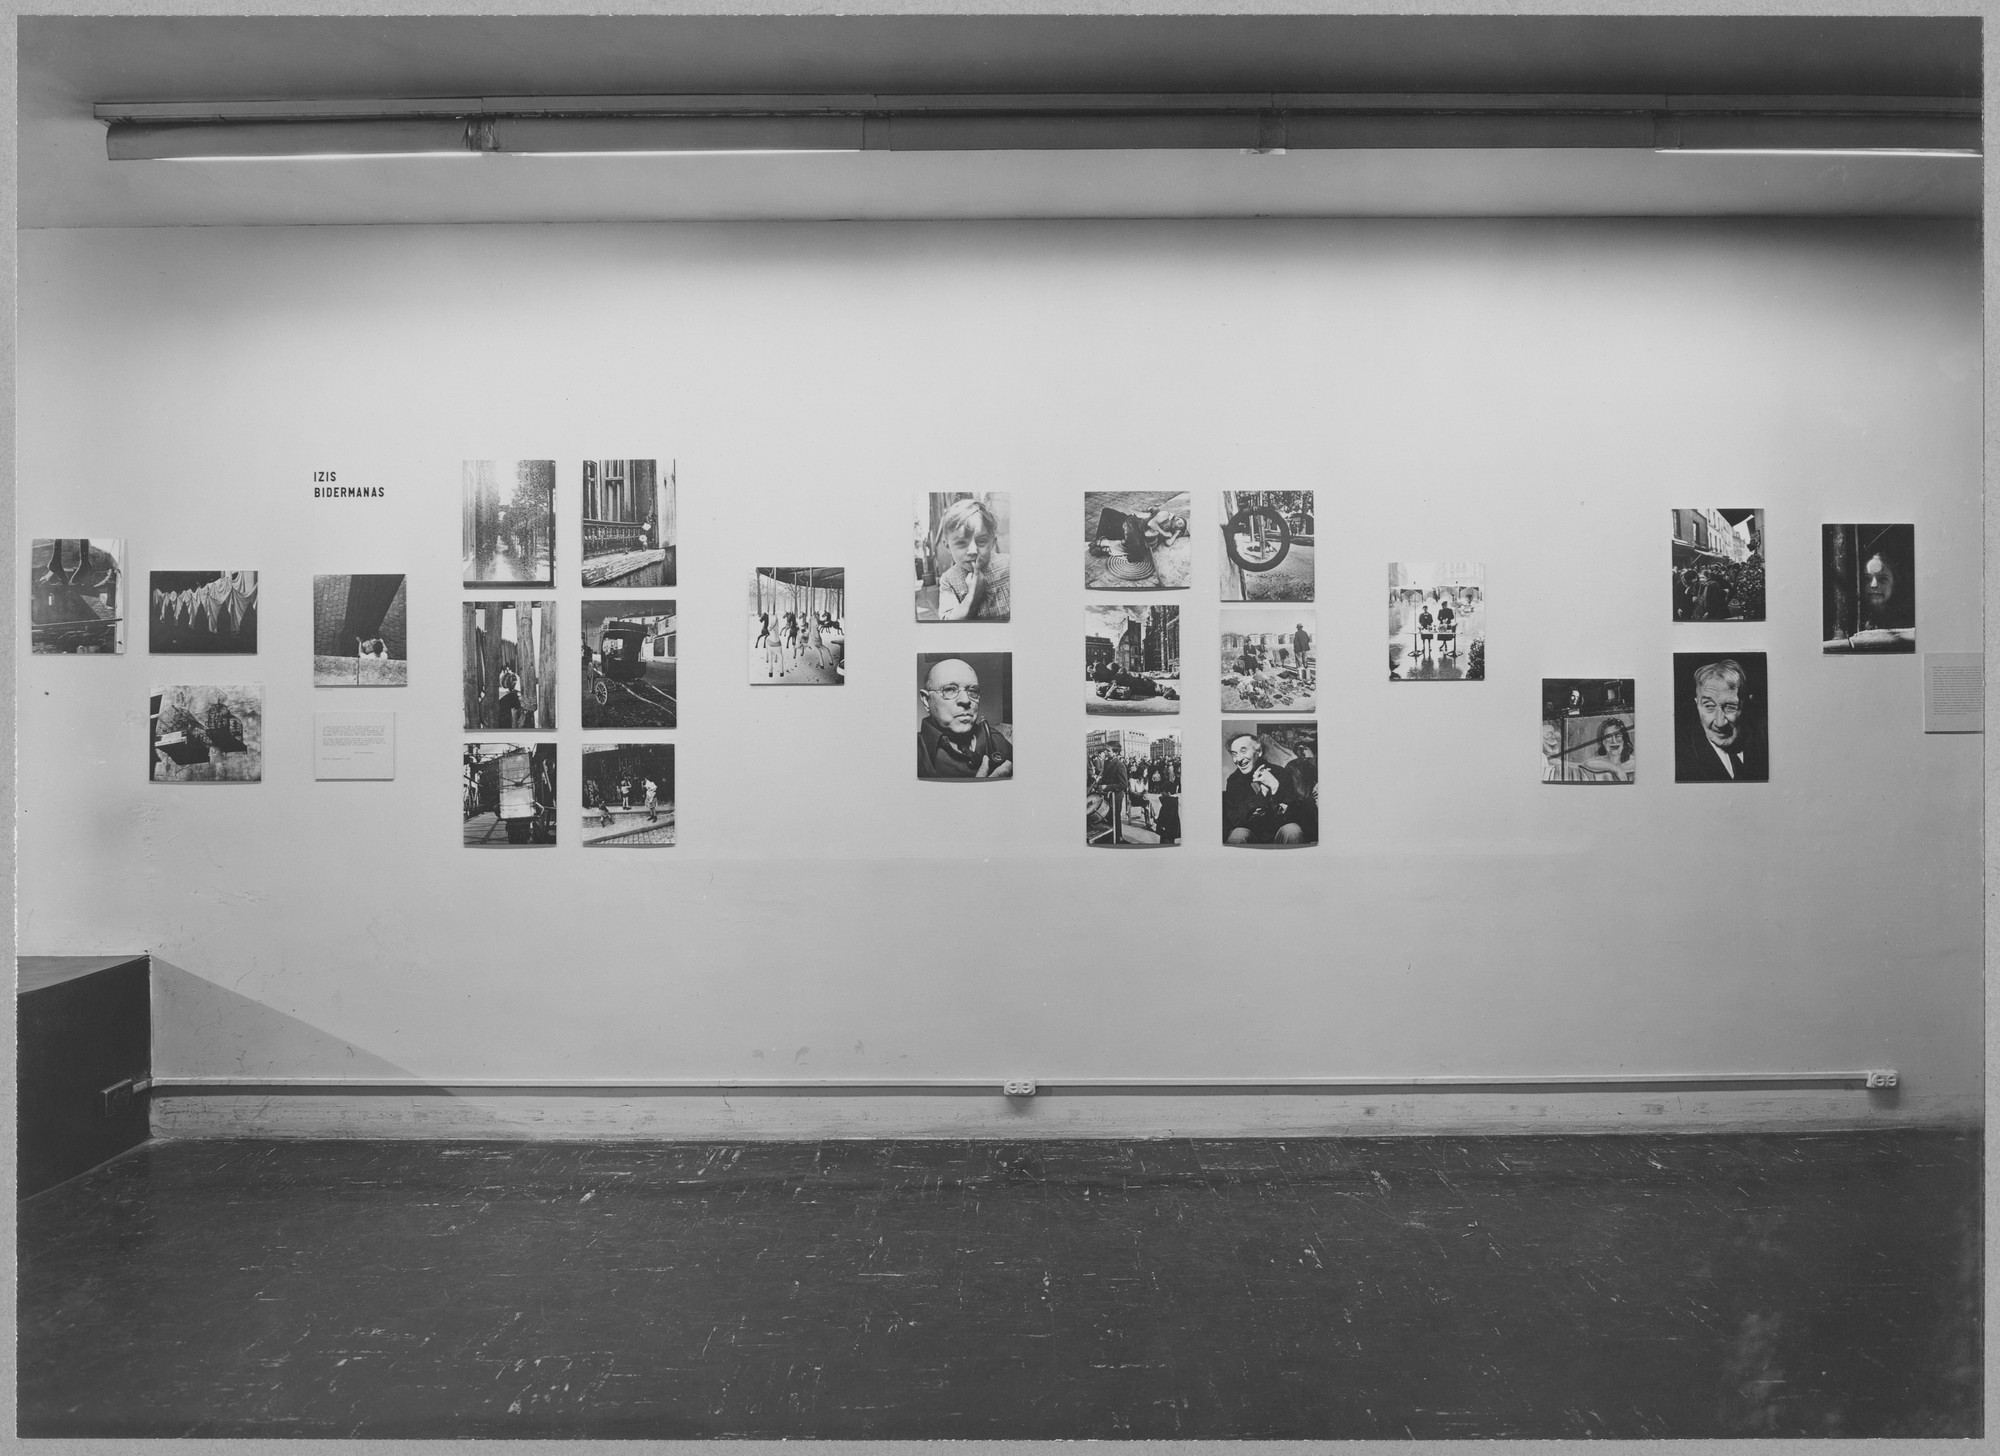 "Installation view of the exhibition, ""Five French Photographers."" December 18, 1951–February 24, 1952. Photographic Archive. The Museum of Modern Art Archives, New York. IN497.1. Photograph by Soichi Sunami."